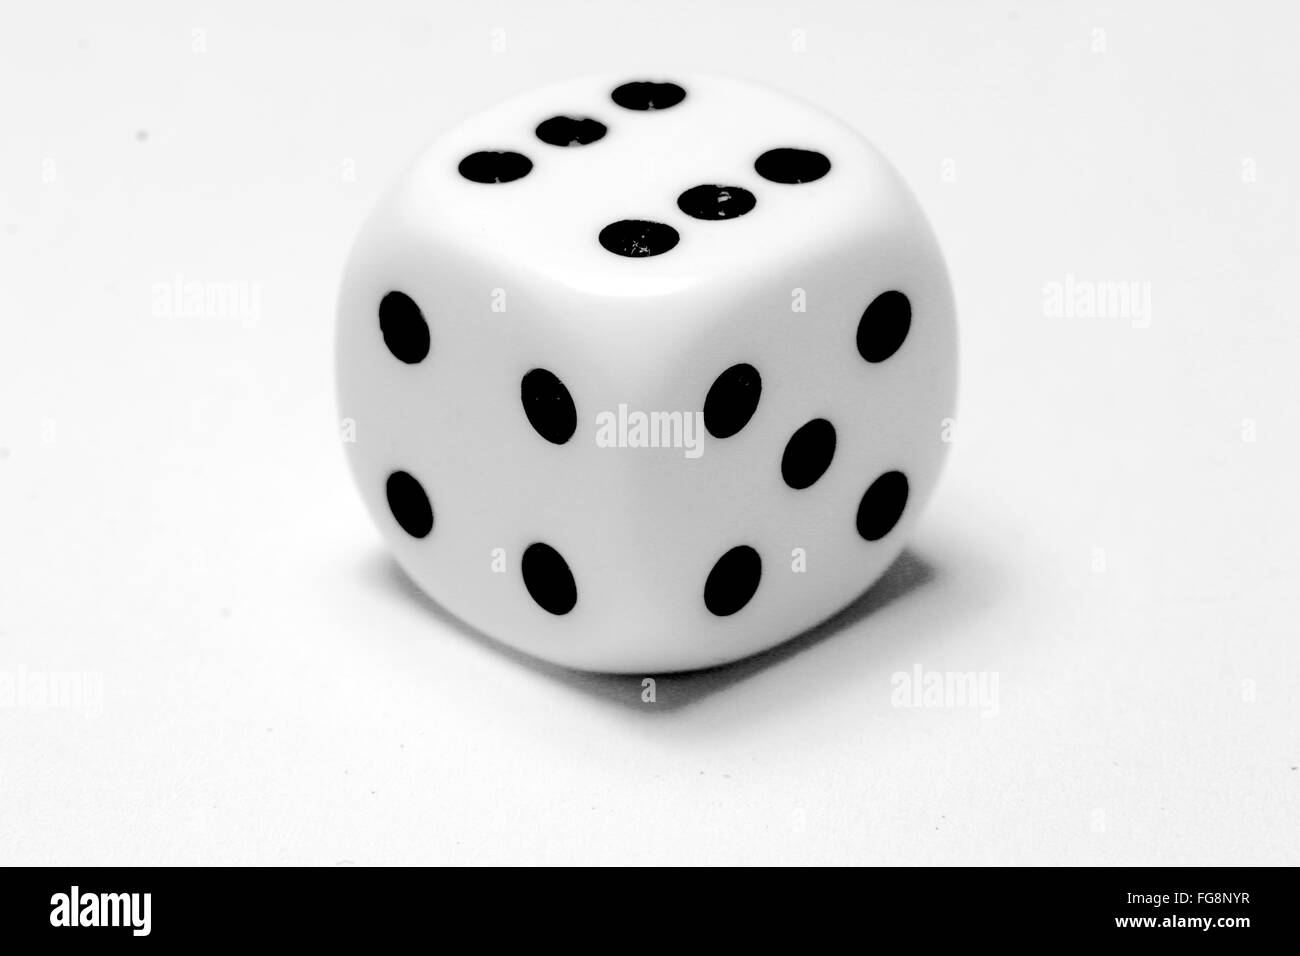 High Angle View Of Dice Against White Background - Stock Image